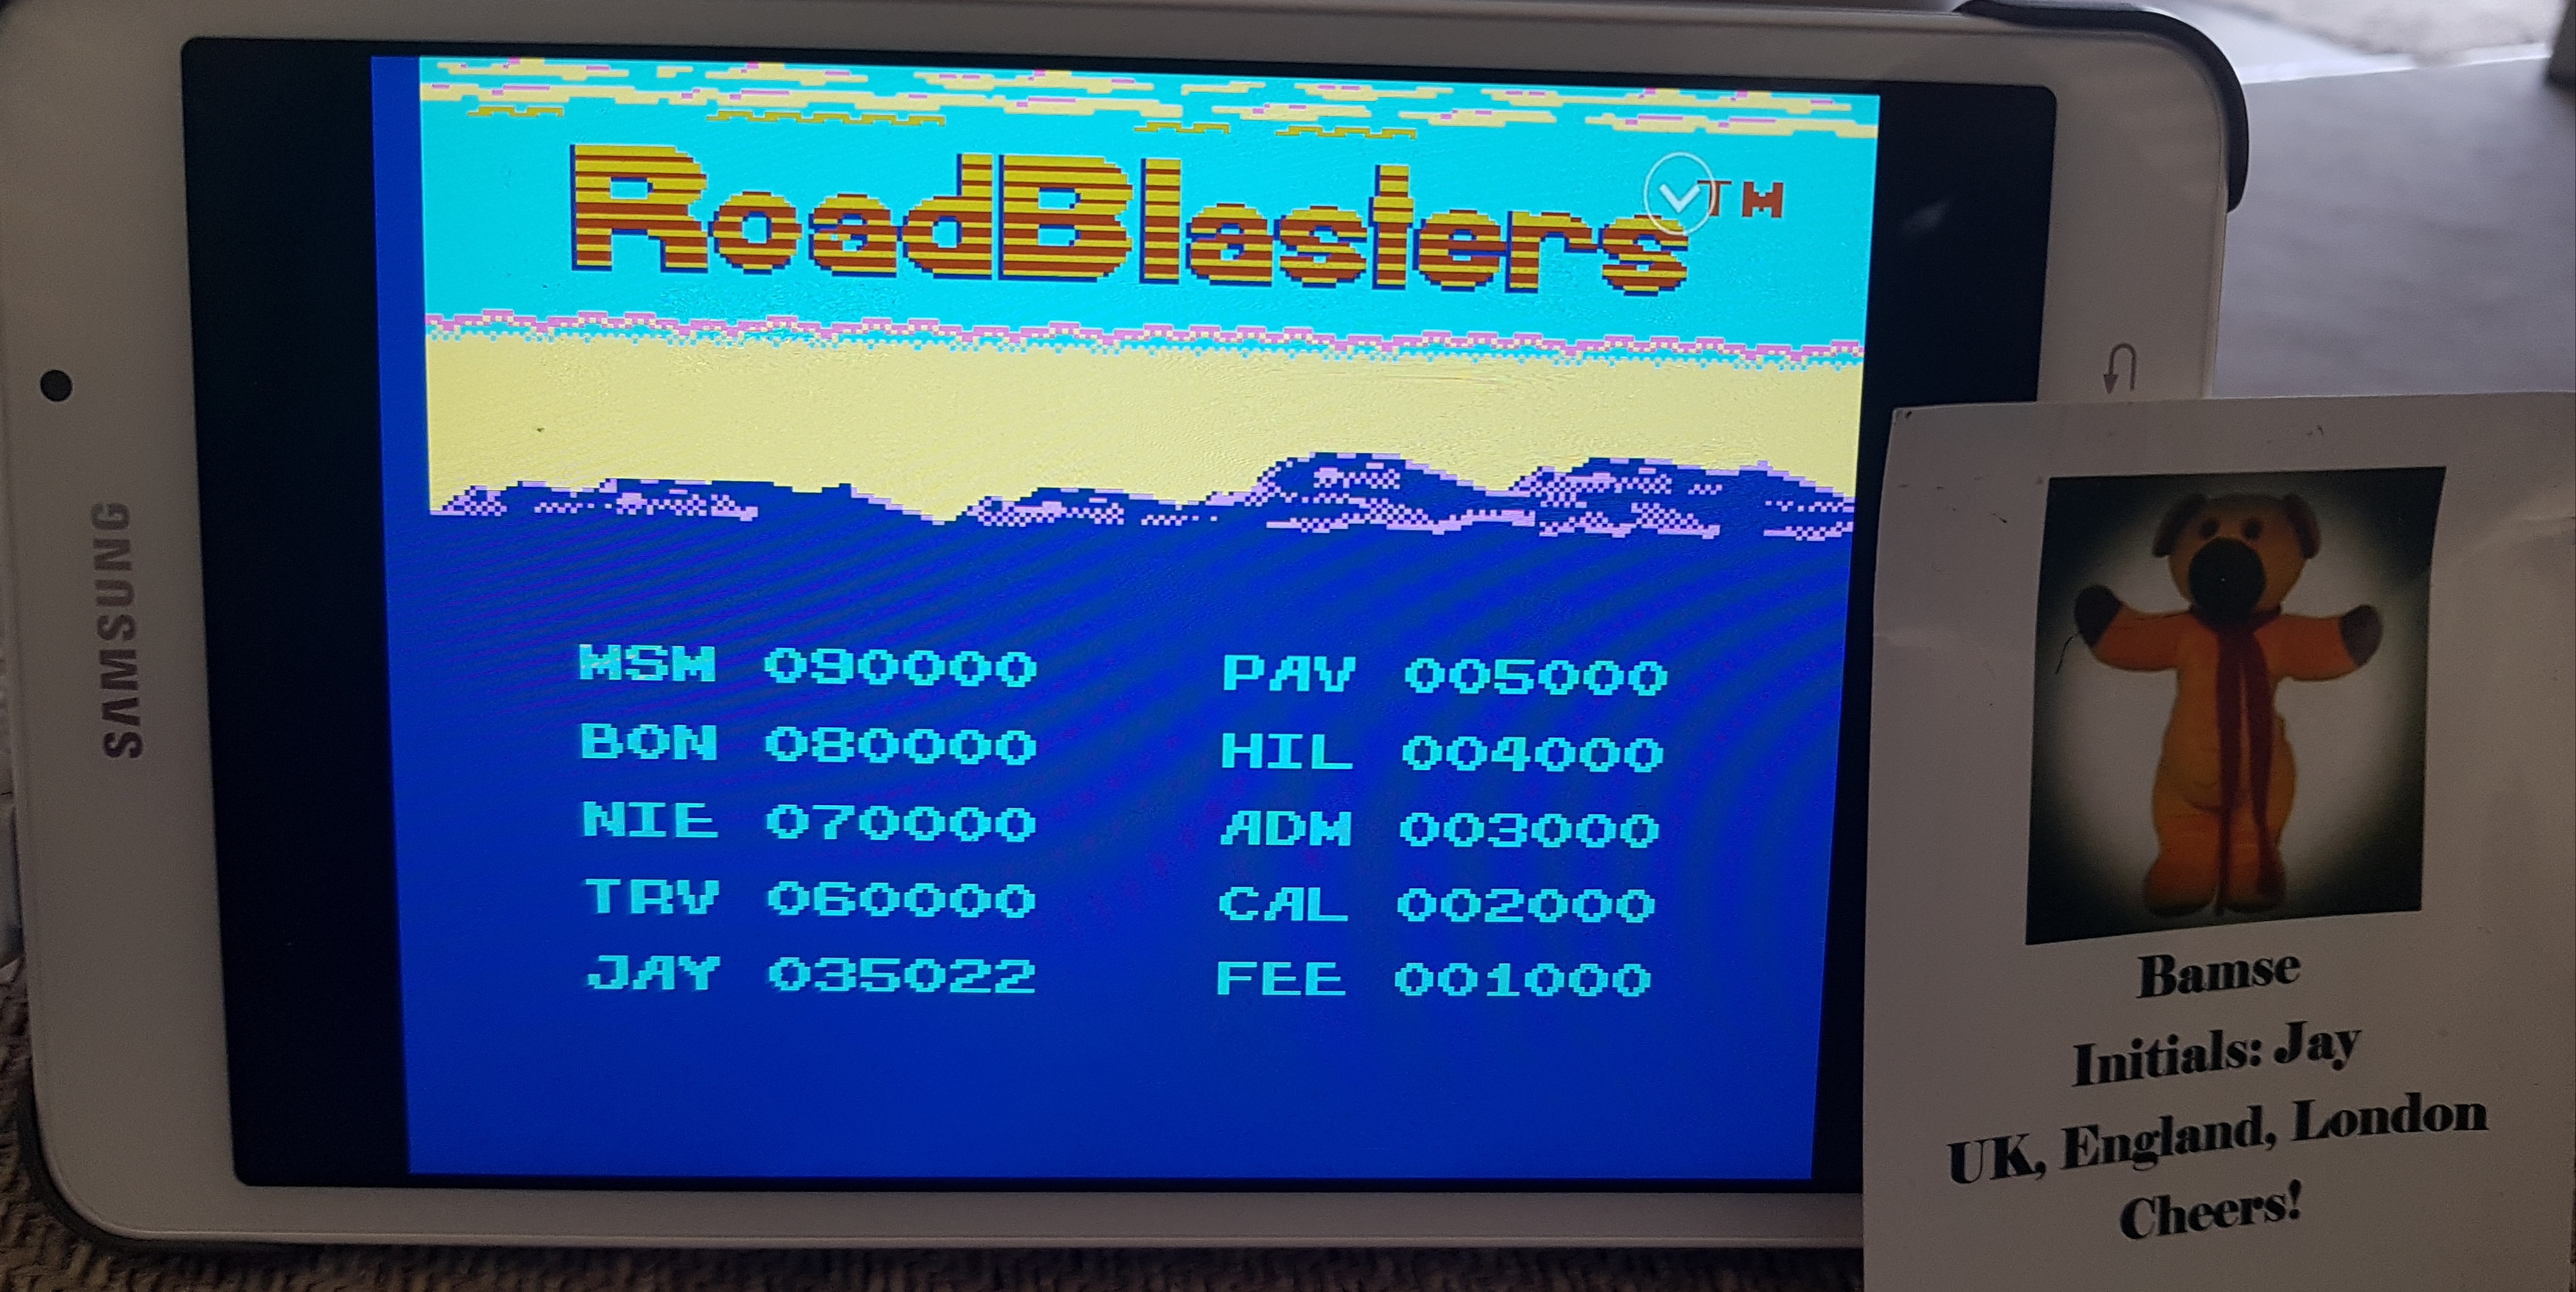 Bamse: RoadBlasters [Level 1 Start] (NES/Famicom Emulated) 35,022 points on 2019-07-04 14:13:09